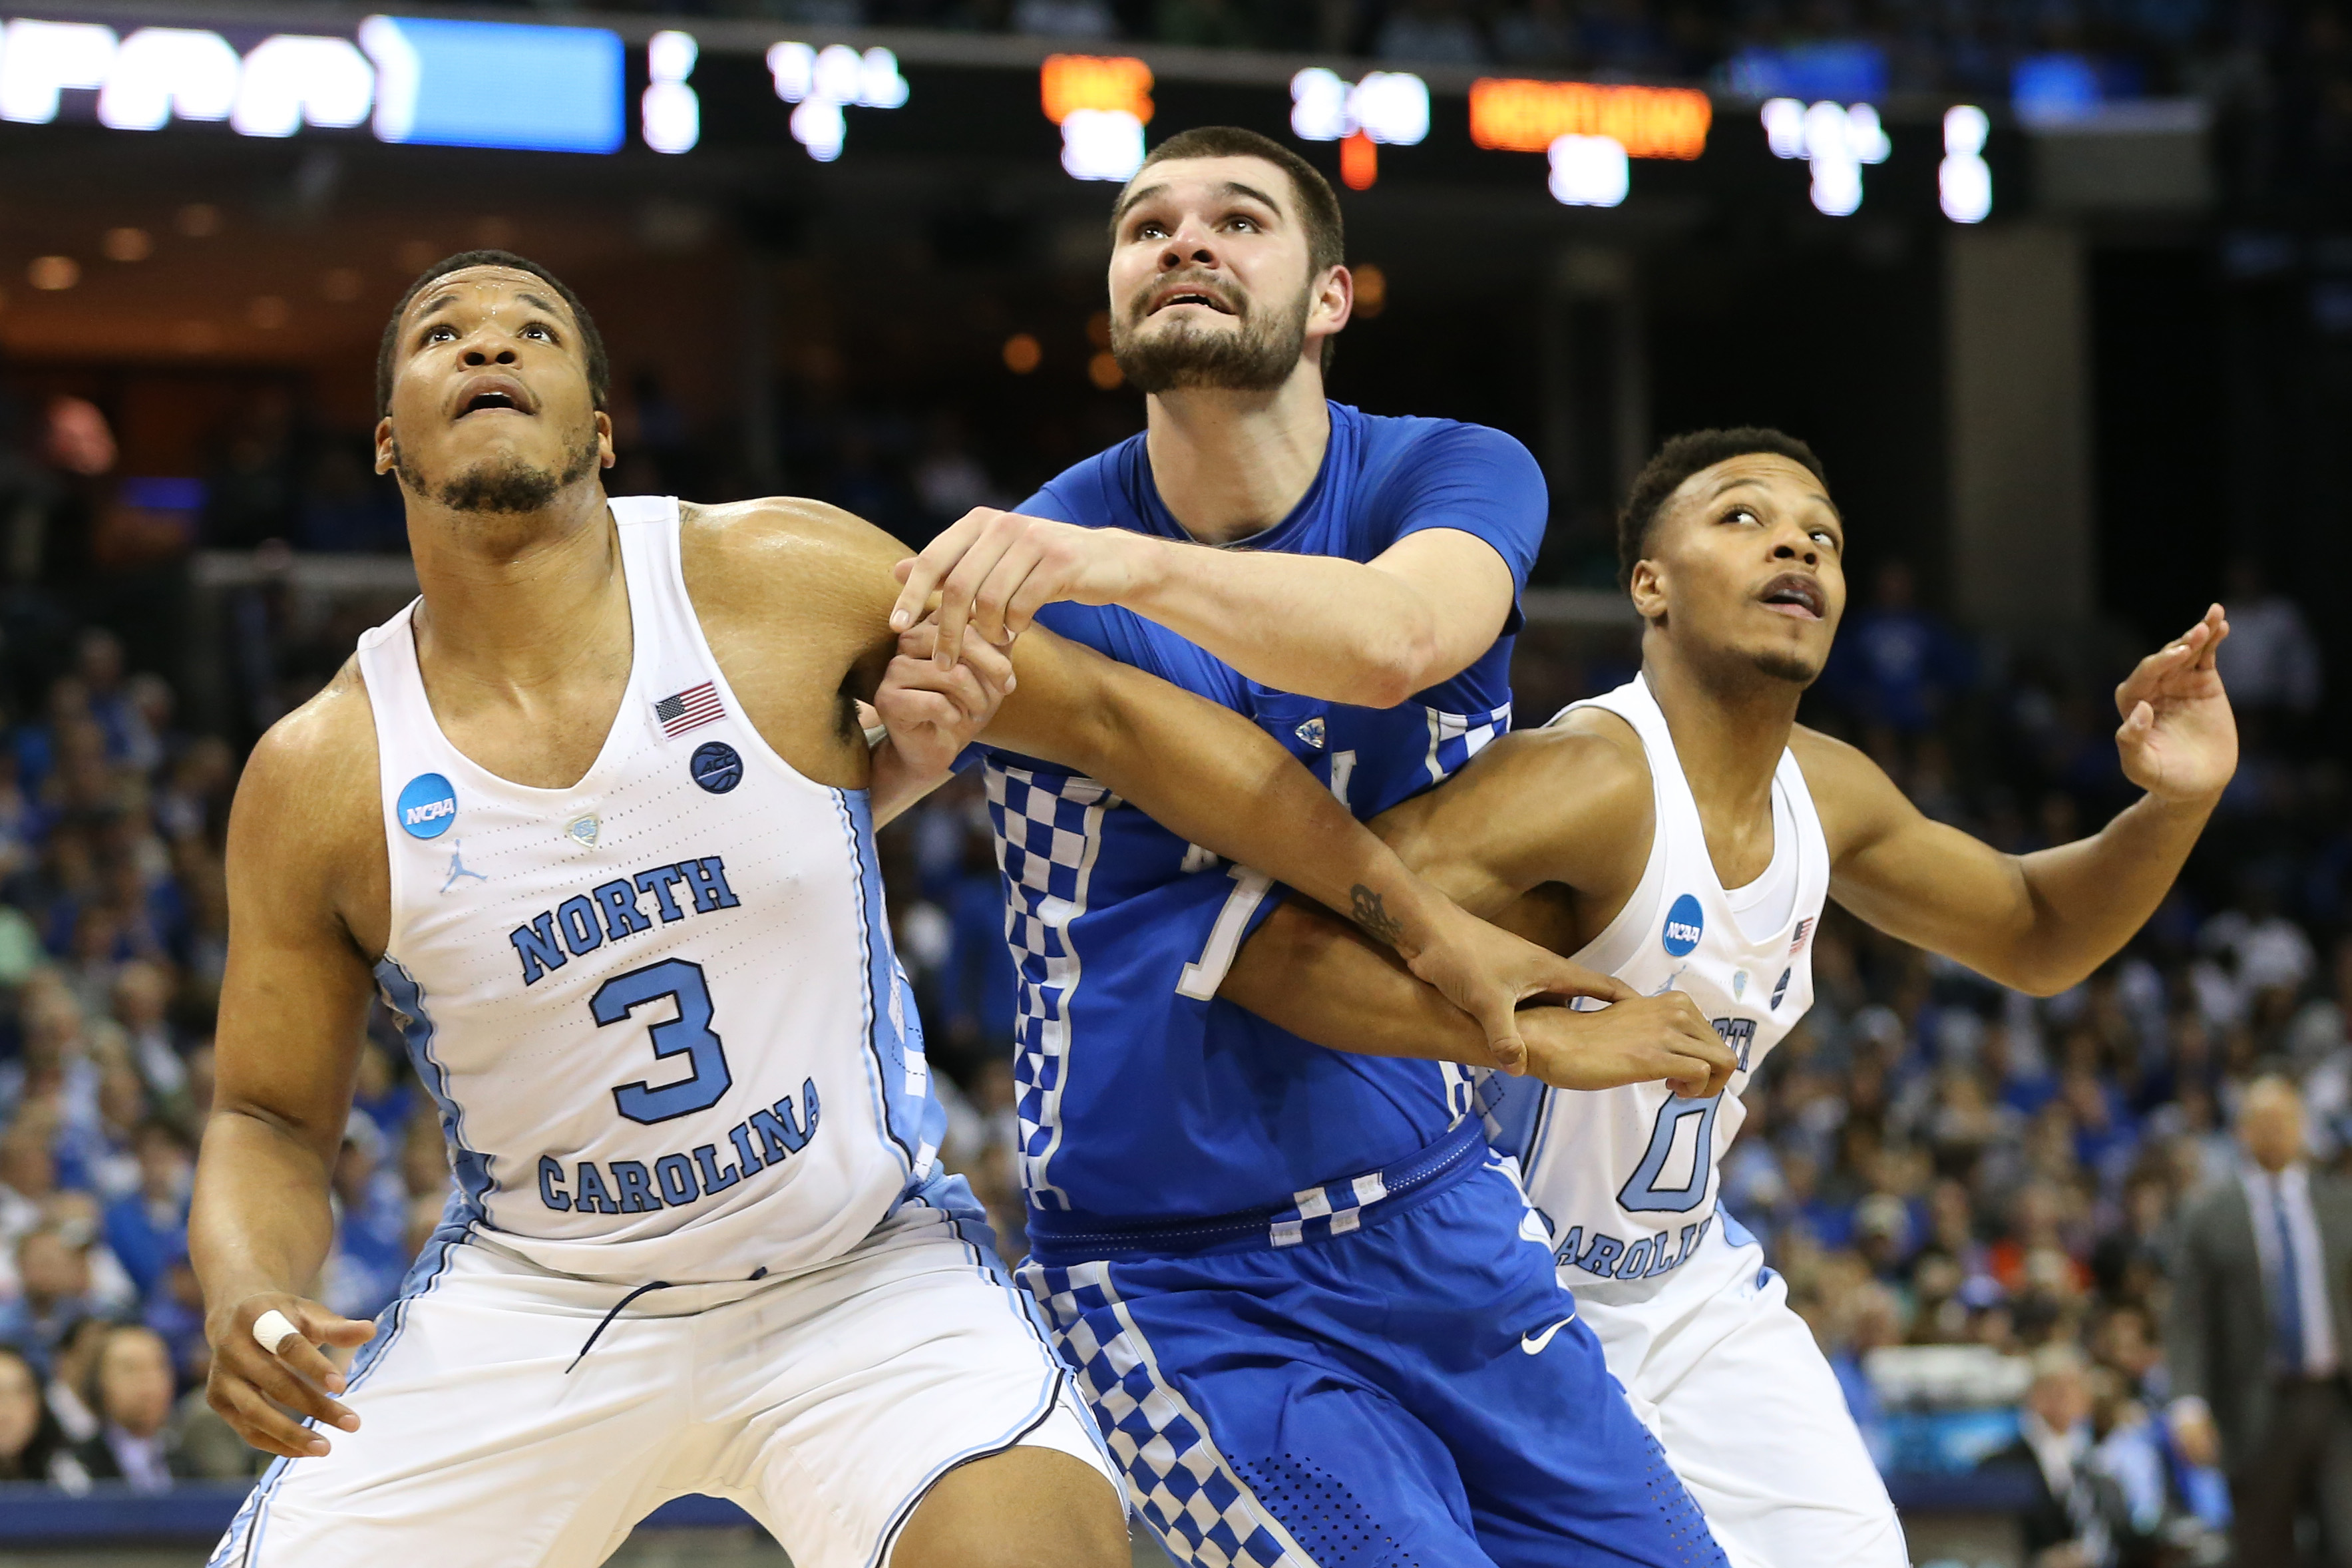 Kentucky Basketball Socal Media Reactions To The Wildcats